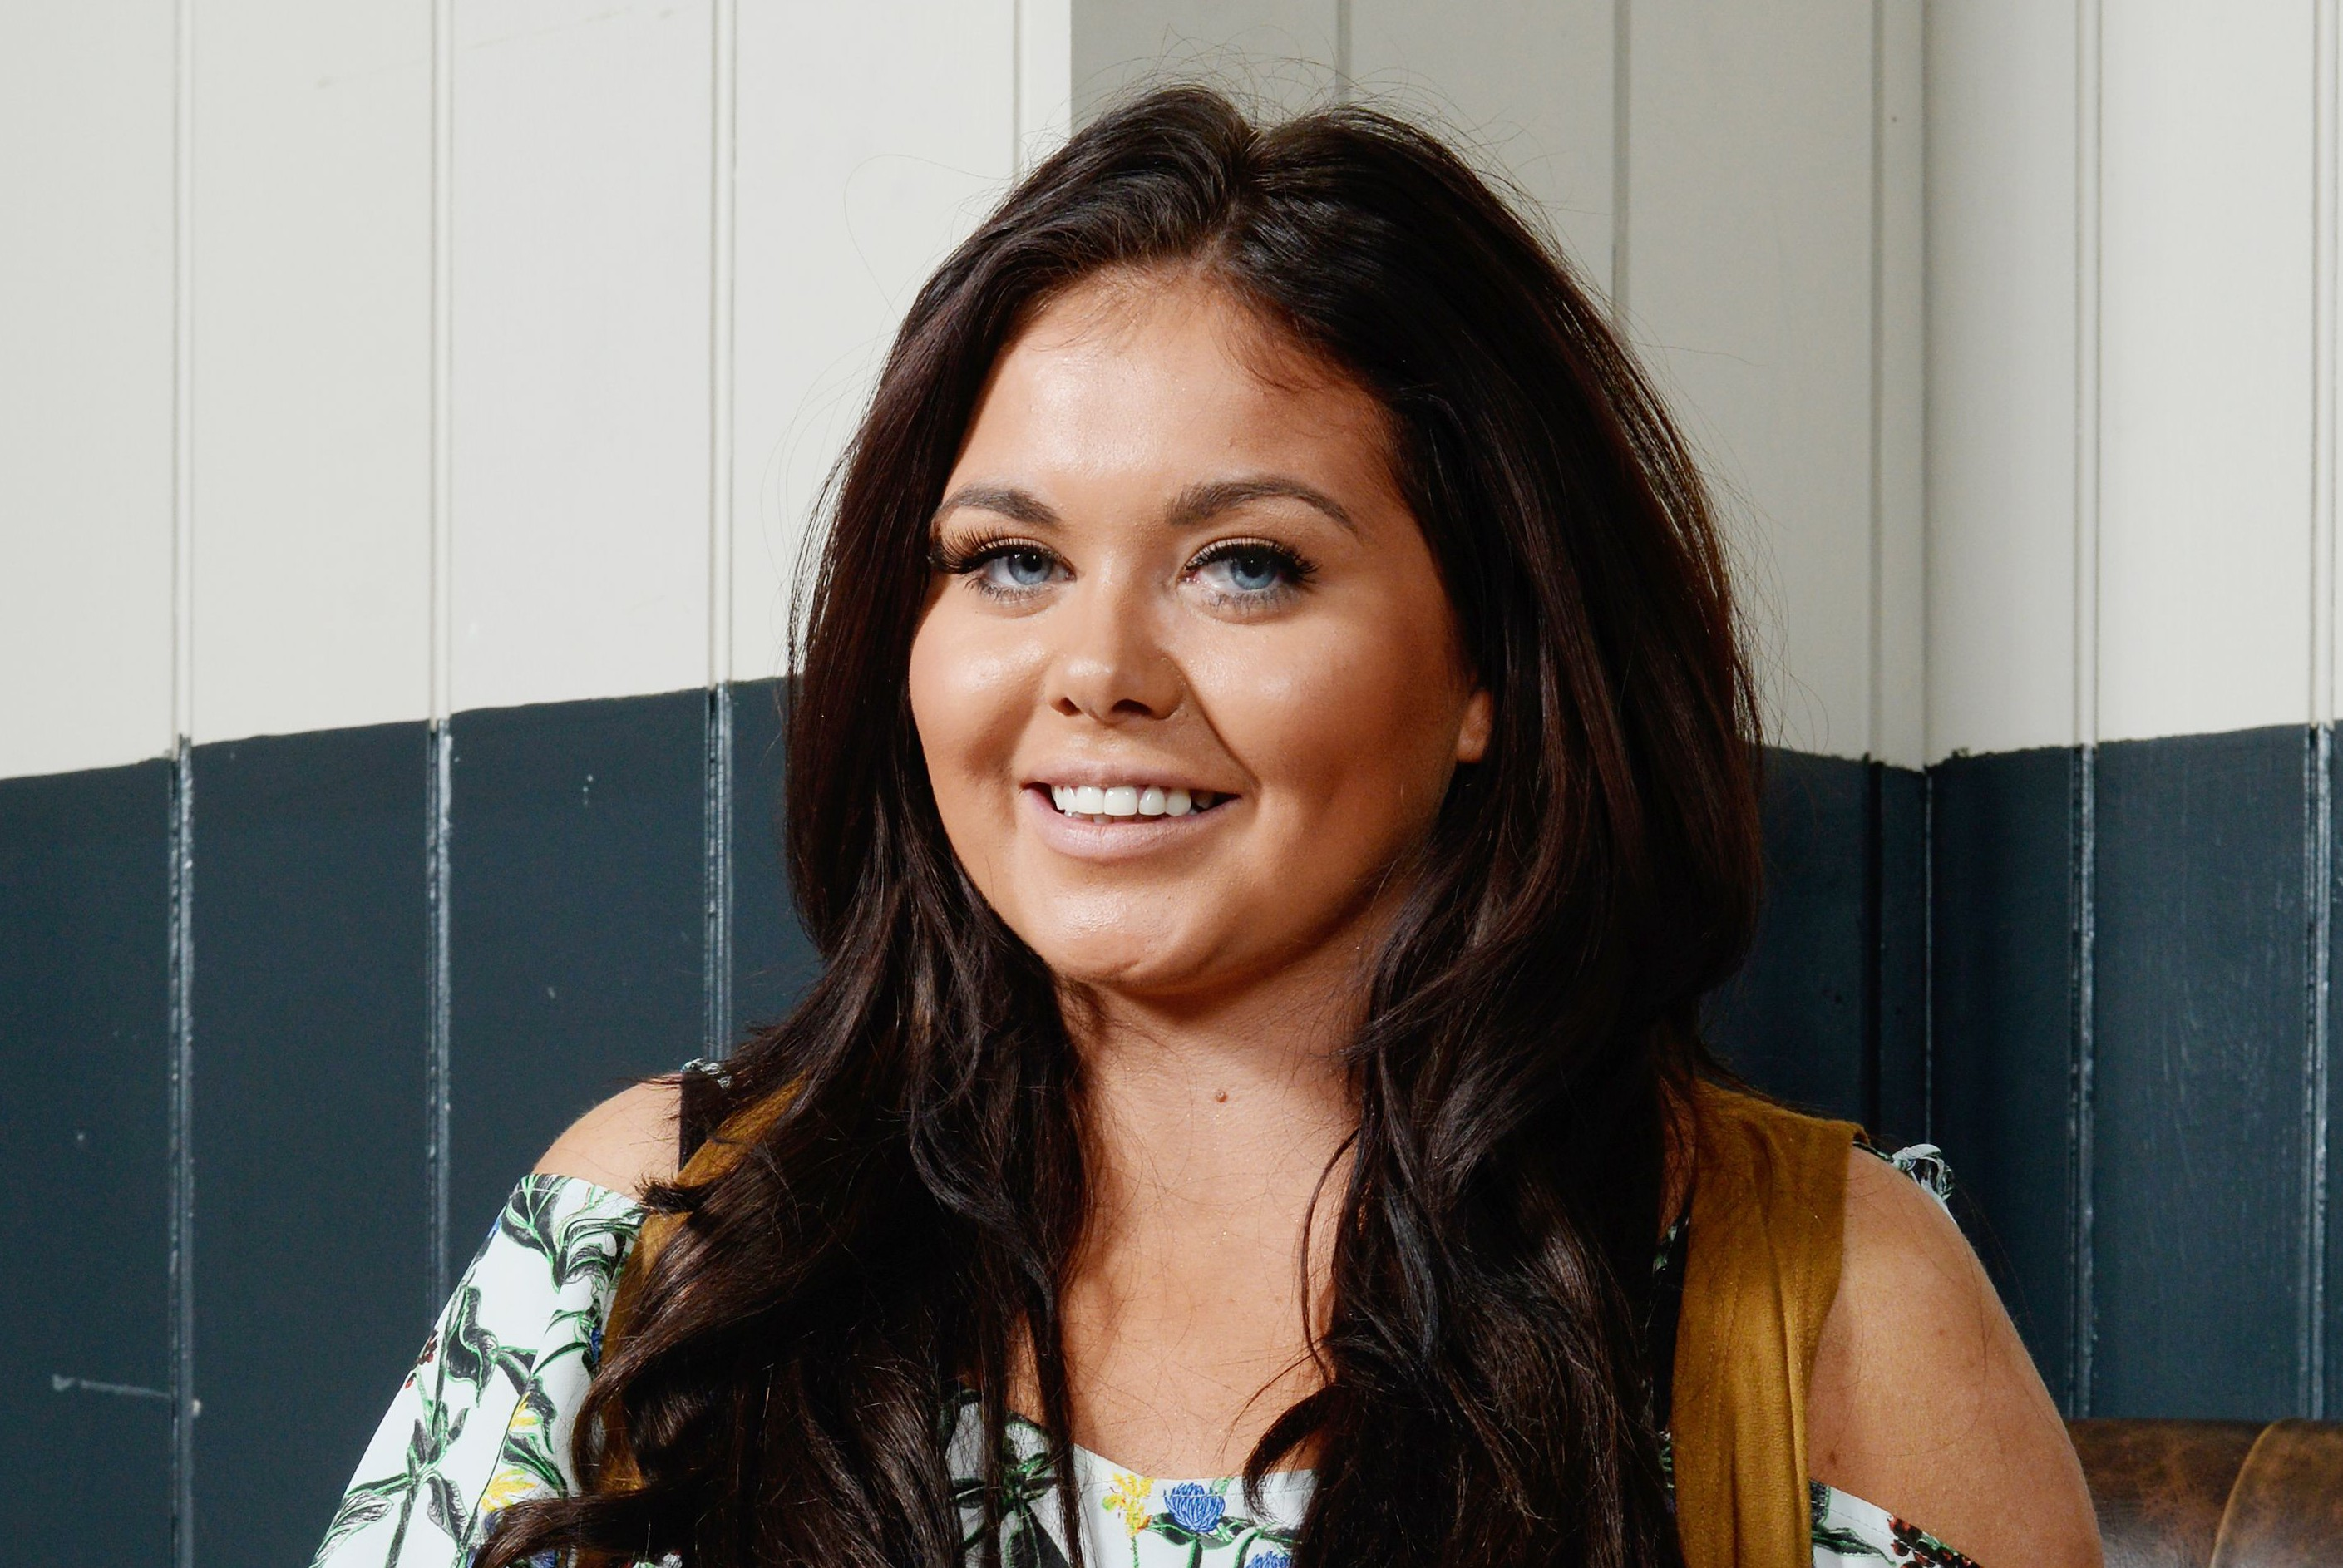 Gogglebox's Scarlett Moffatt shows off chic new grey look – would you dare to go there?